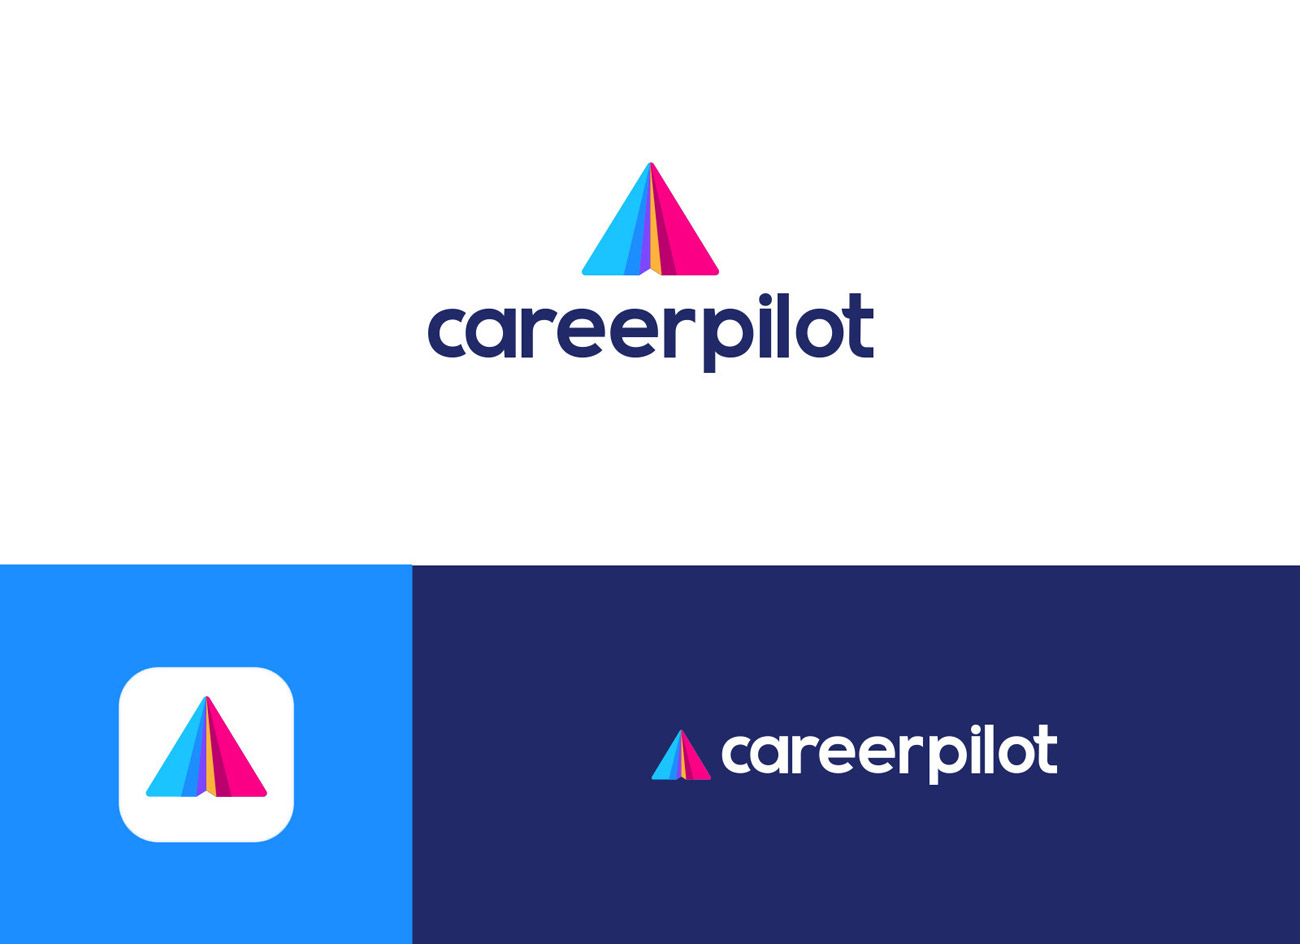 corporate logo design by andrea pinter